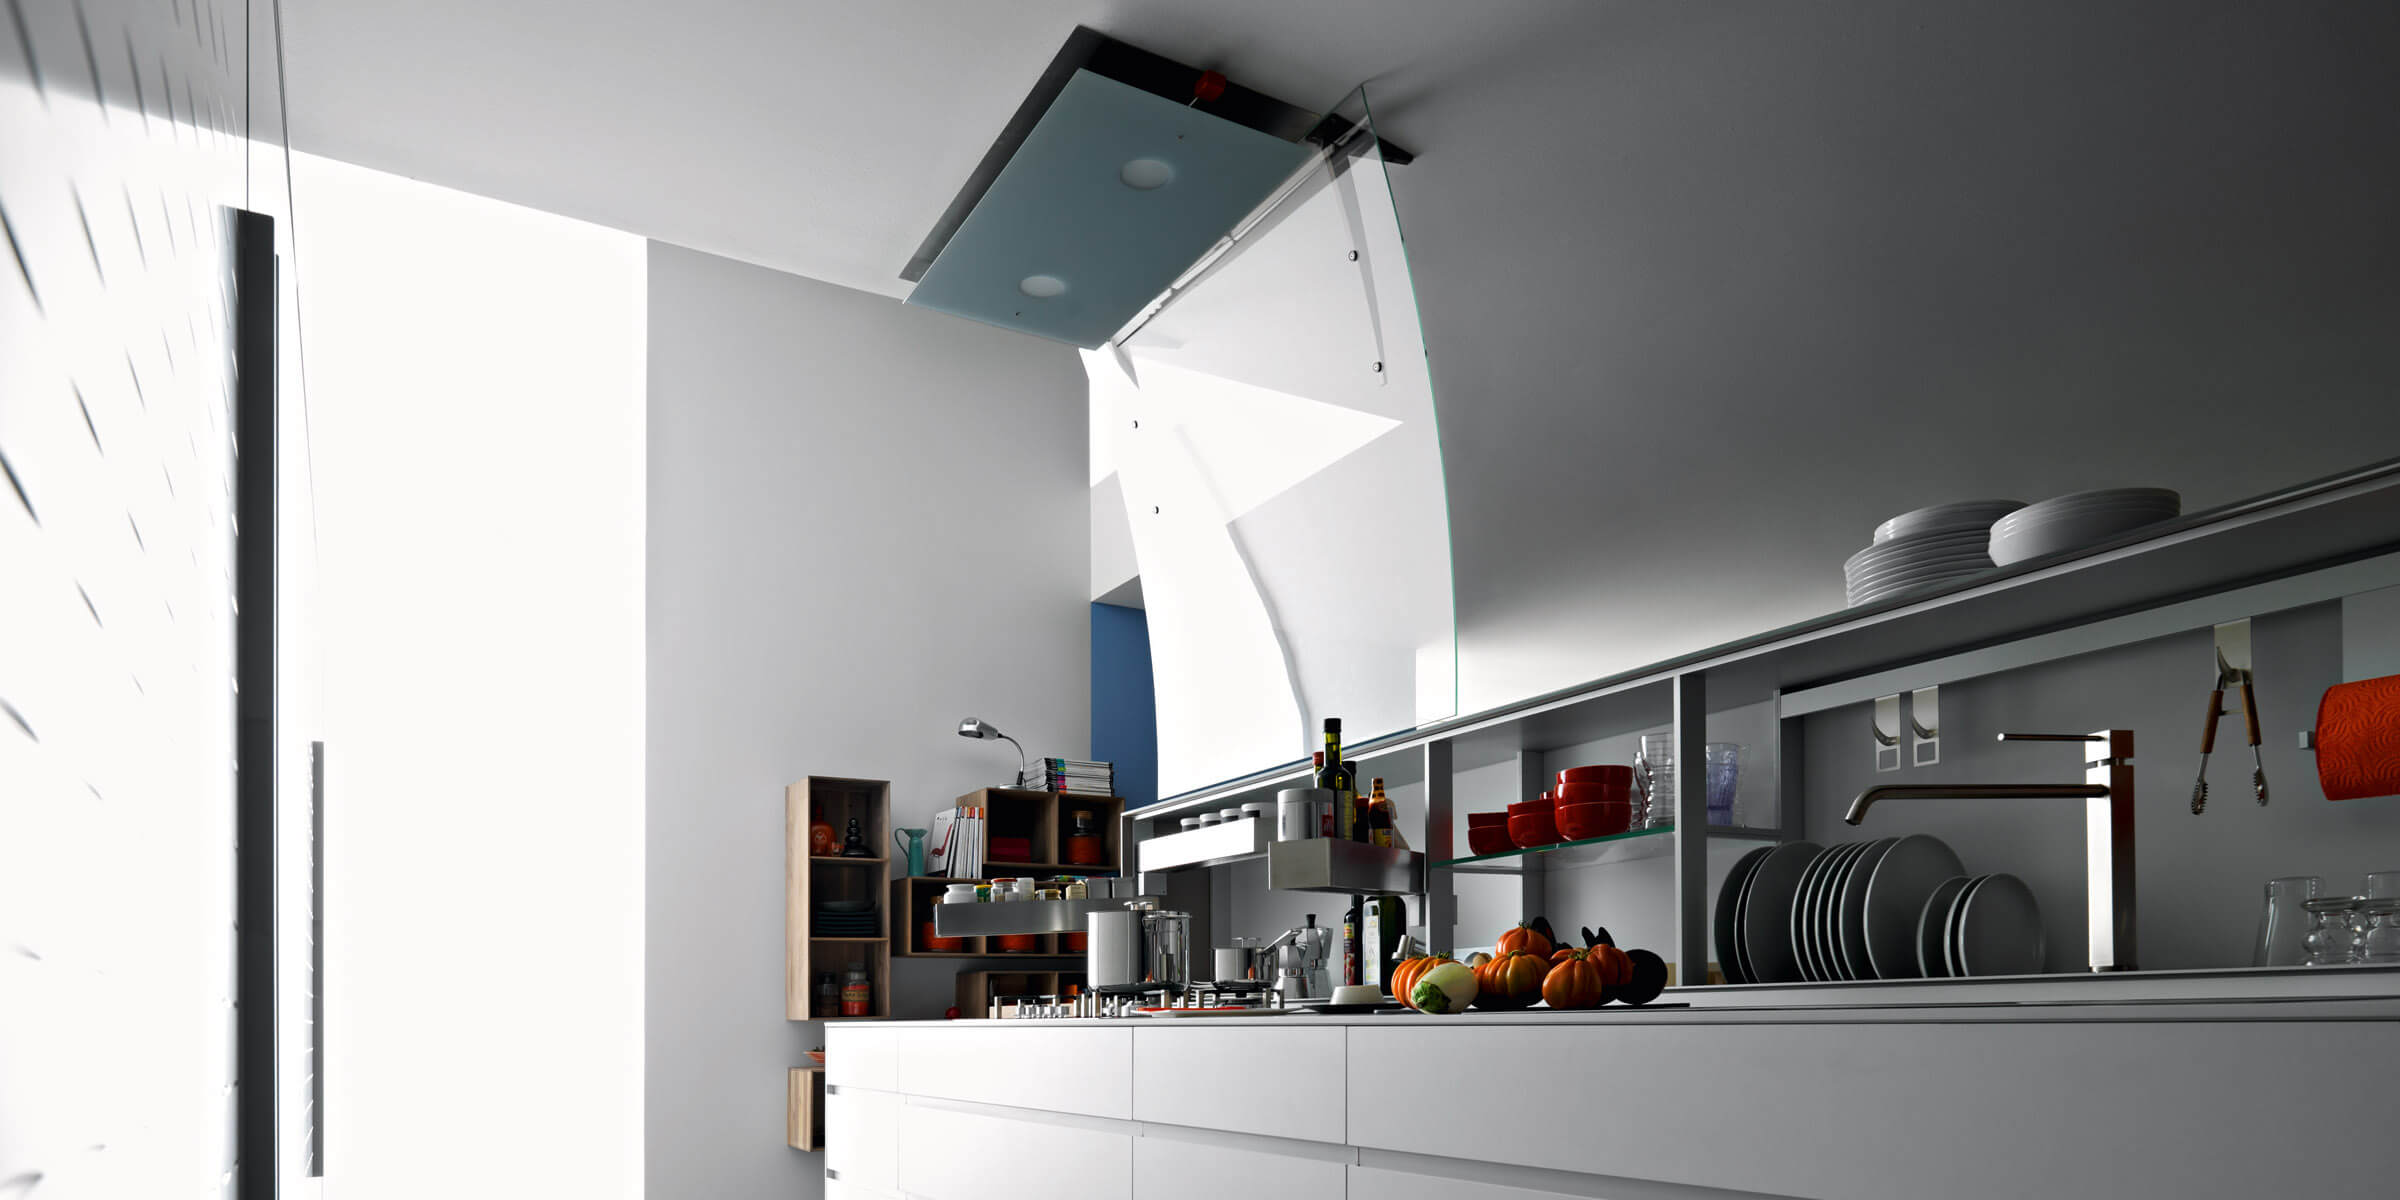 56 new logica system isola valcucine12 1  - Artematica